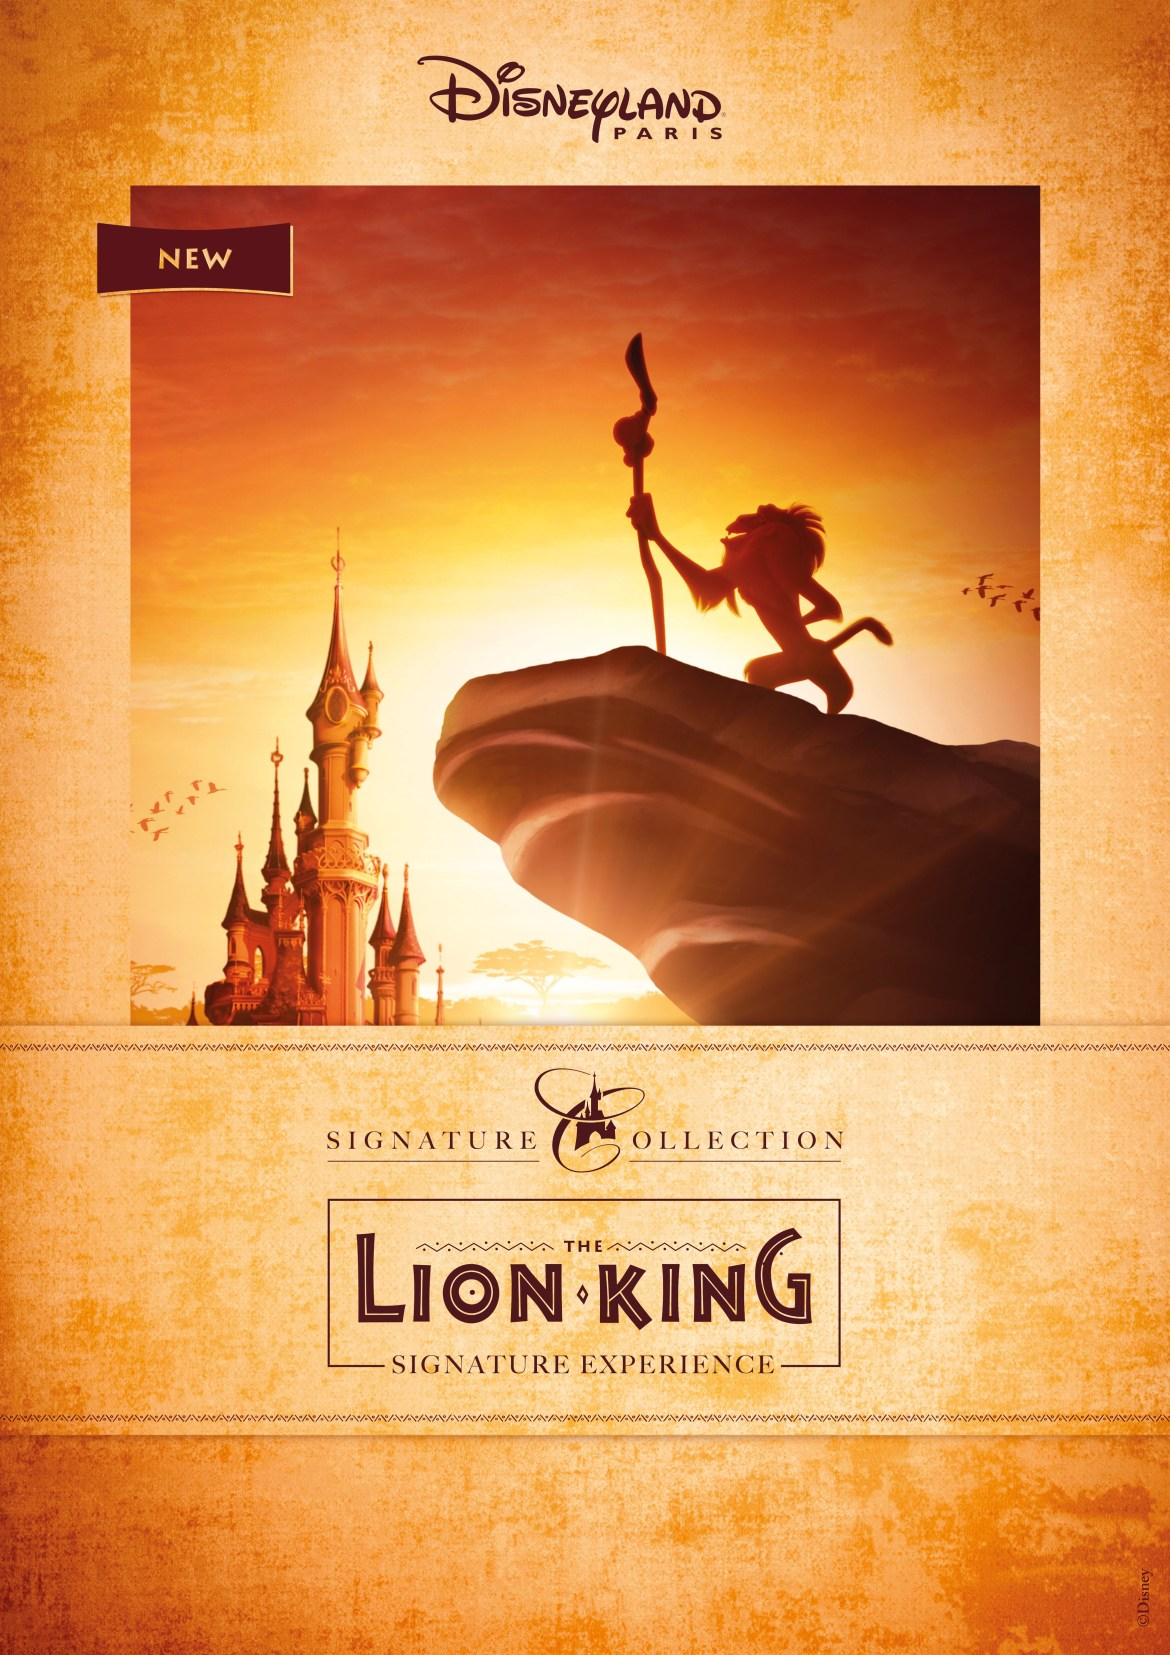 Lion King Signature Experience Roaring into Disneyland Paris!